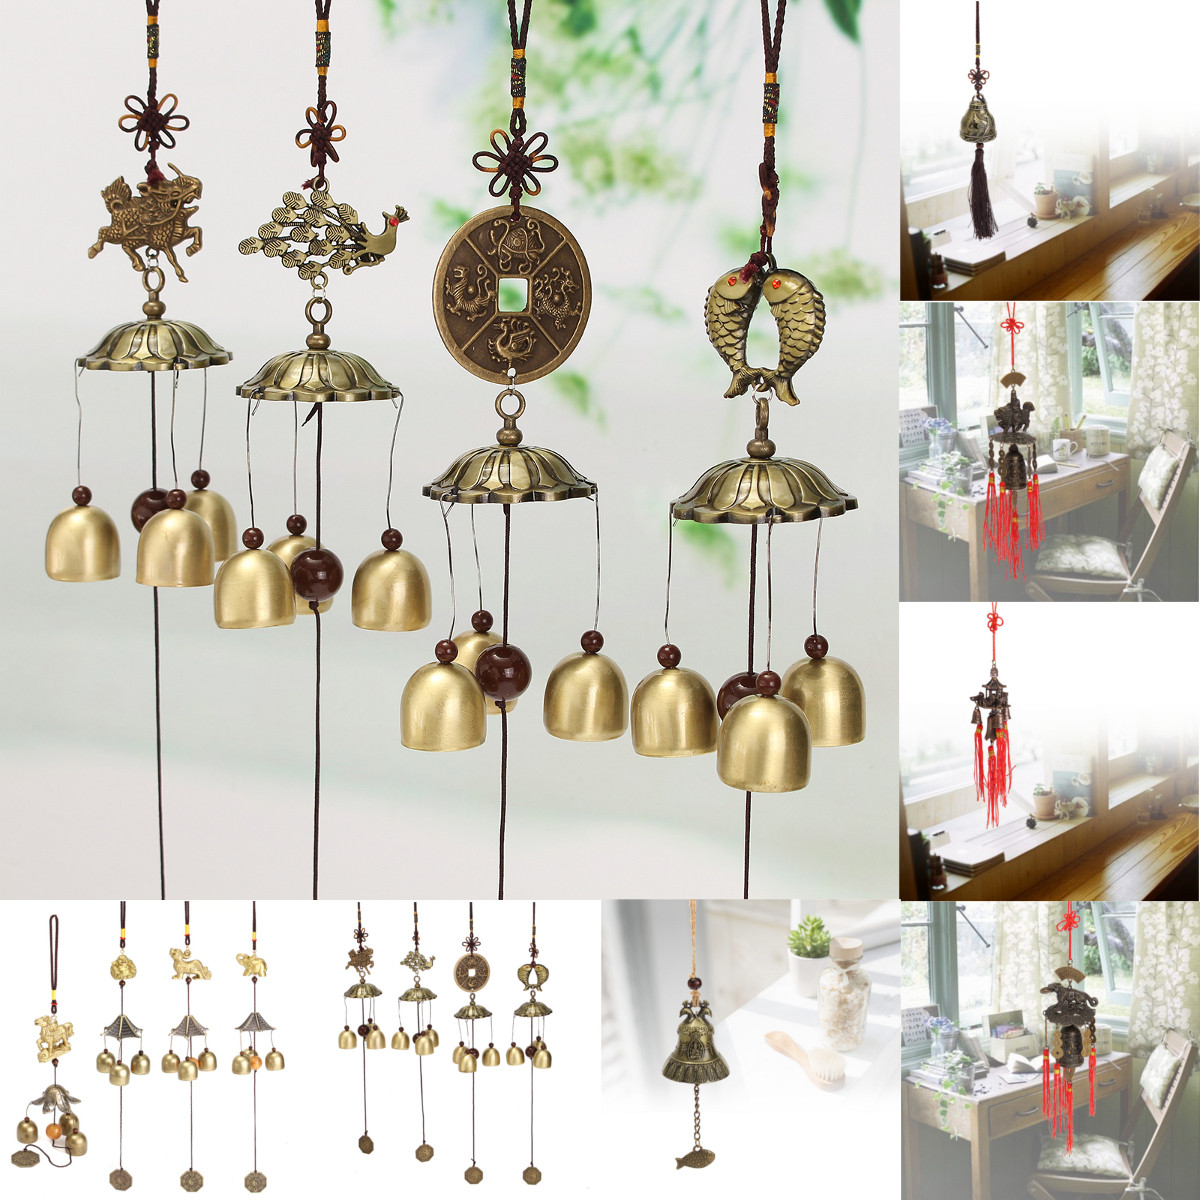 feng shui bell wind chime chinese lucky fortune car. Black Bedroom Furniture Sets. Home Design Ideas